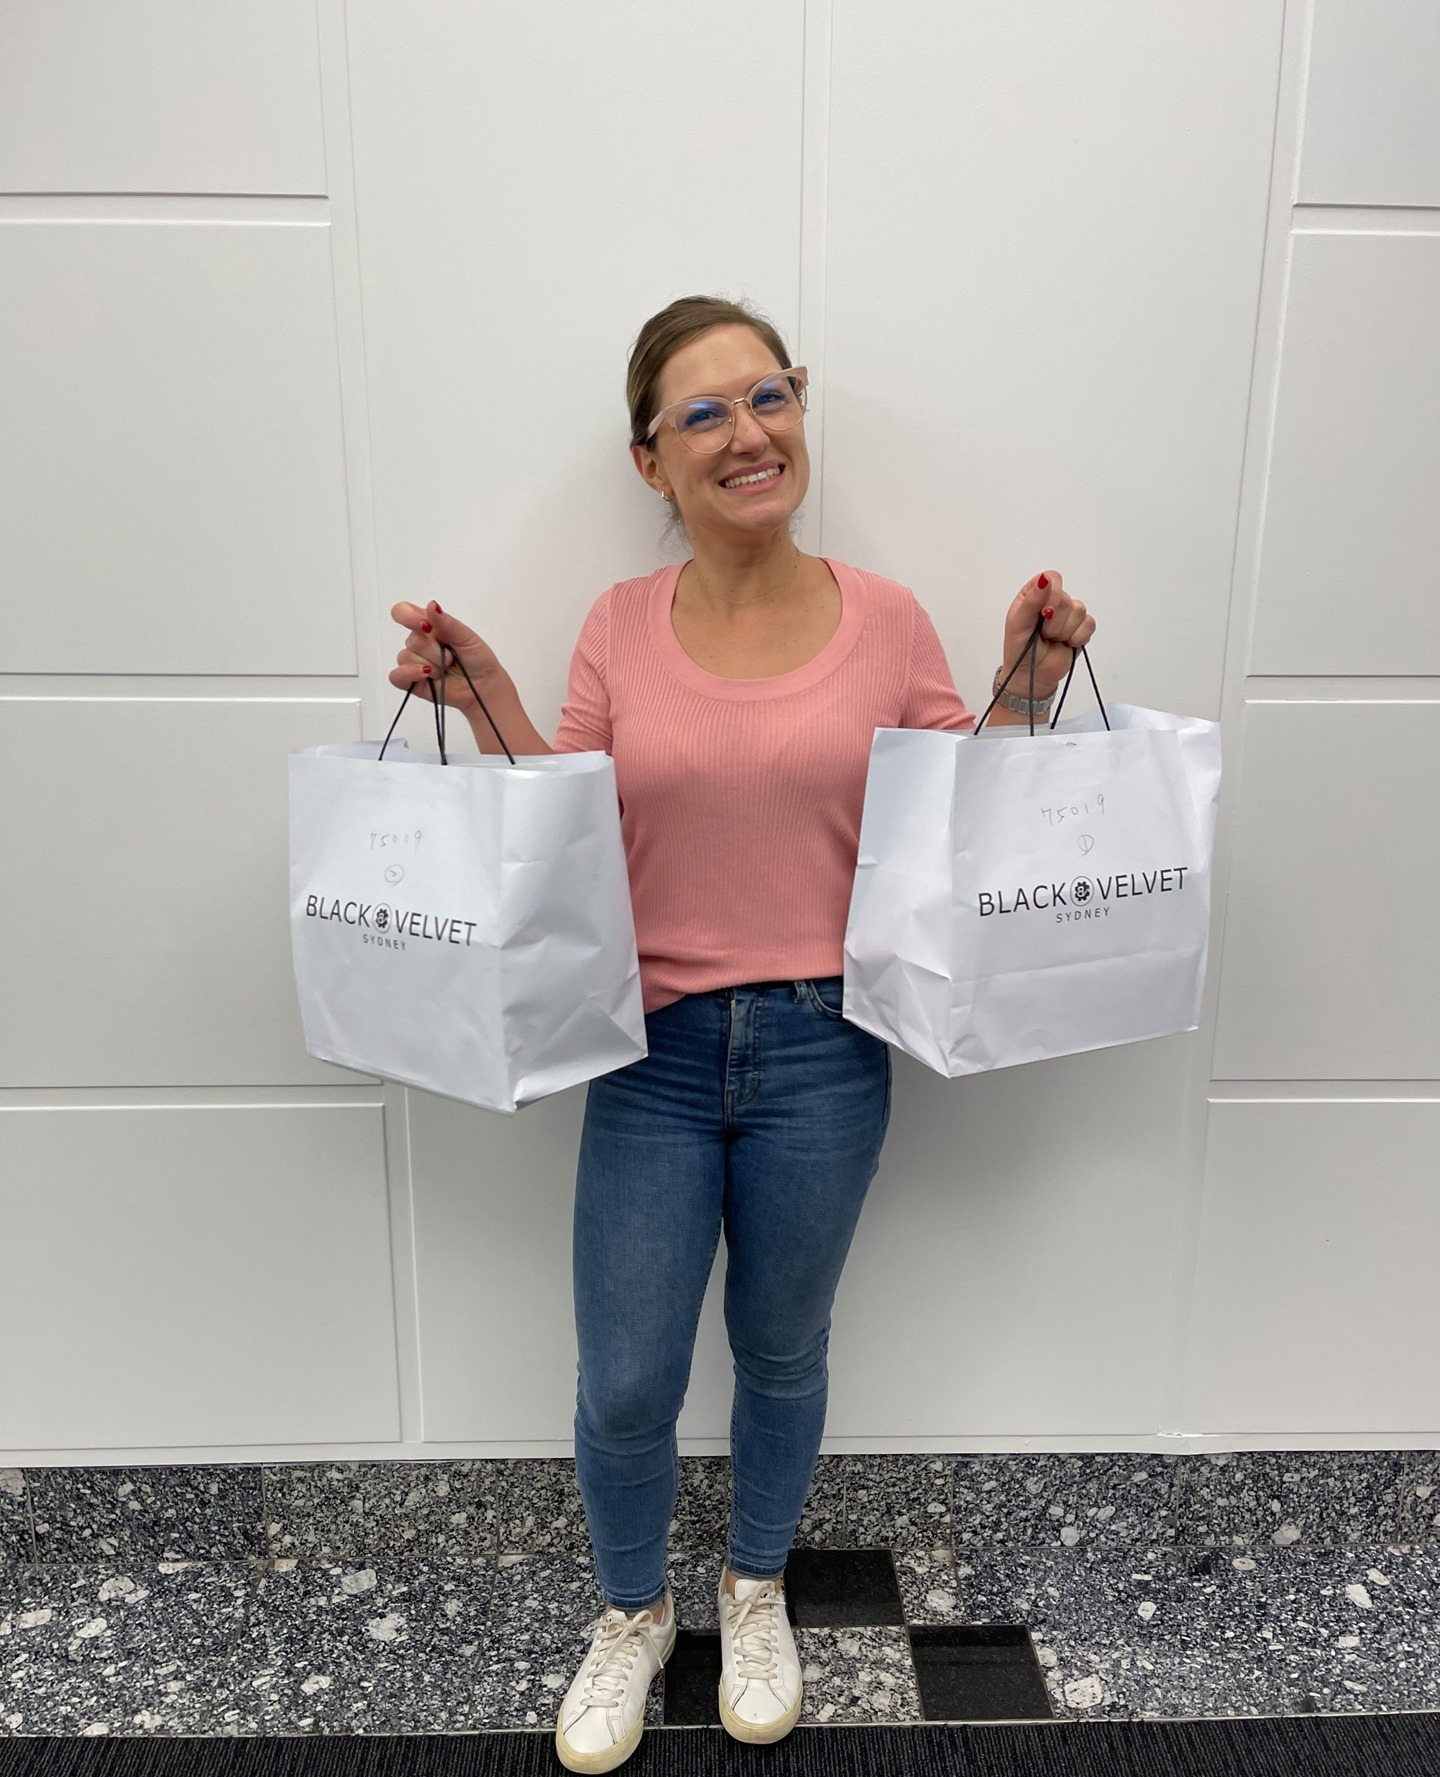 Service with a smile. In the latest instalment of WOW's cupcake crusade, it was Arzum's turn to sprinkle some joy on her clients and candidates. #RecruitmentHappy